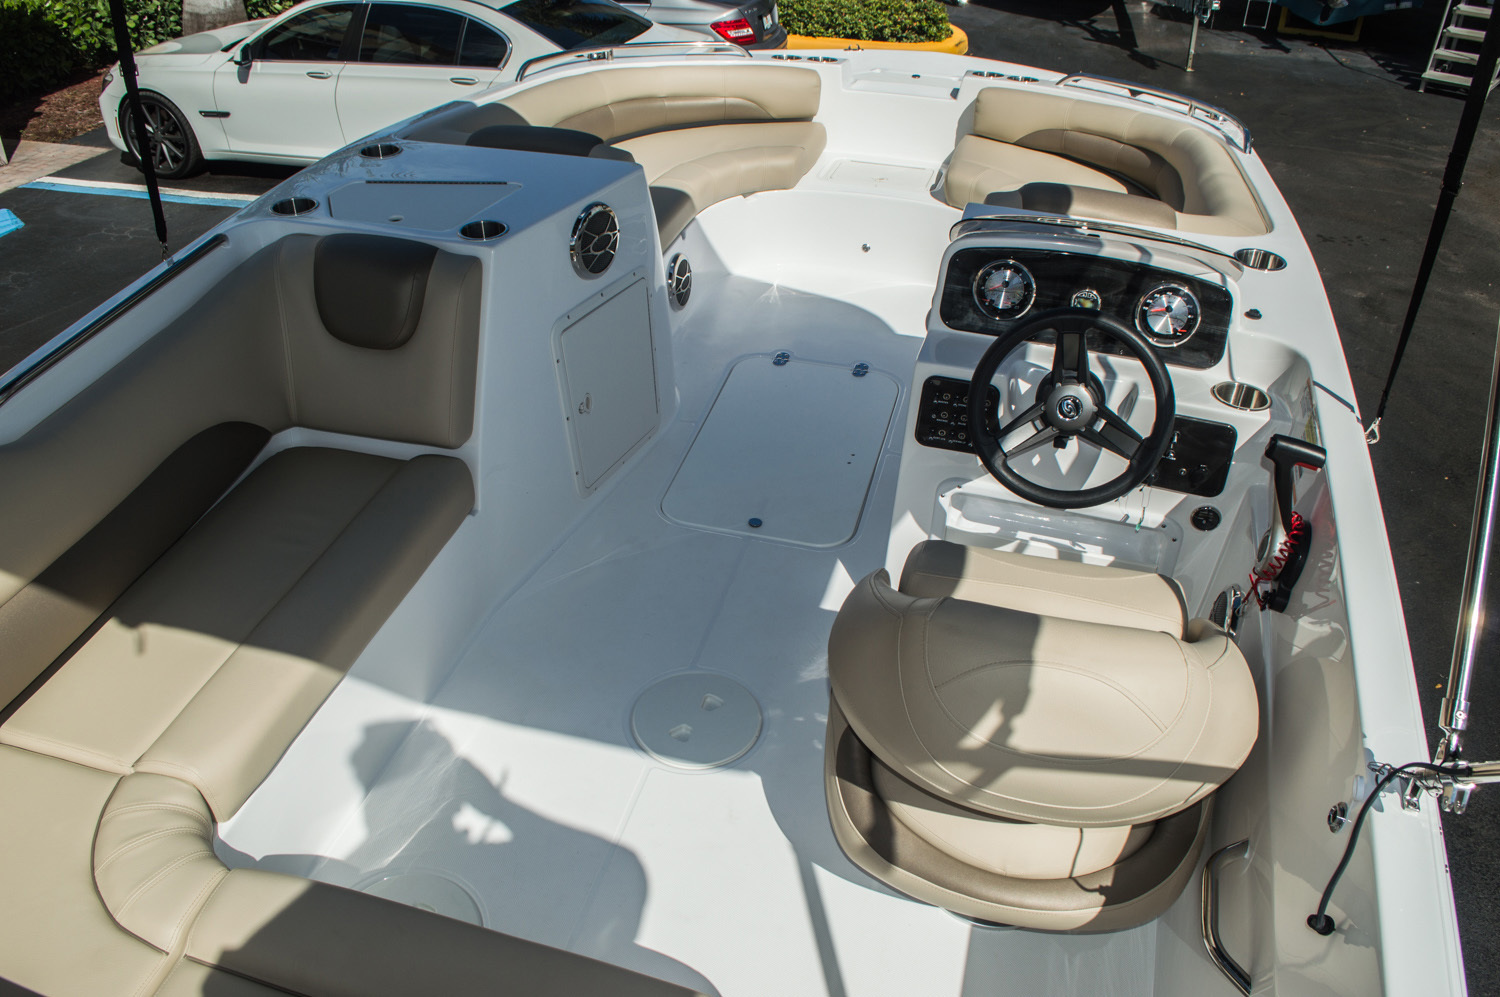 Thumbnail 15 for New 2016 Hurricane SunDeck Sport SS 188 OB boat for sale in West Palm Beach, FL